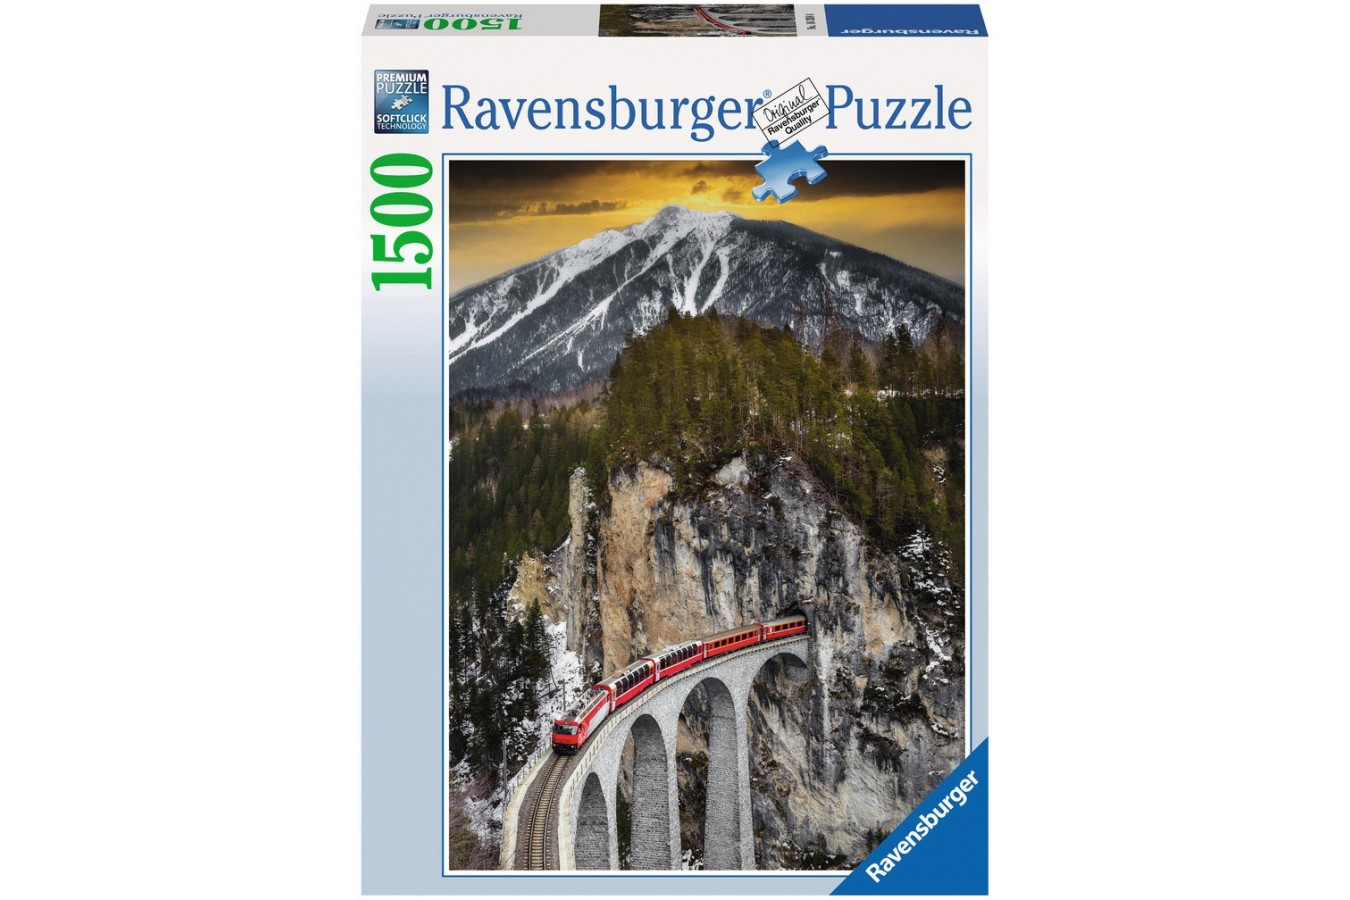 Puzzle Ravensburger - Canion Iarna, 1.500 piese (16358)